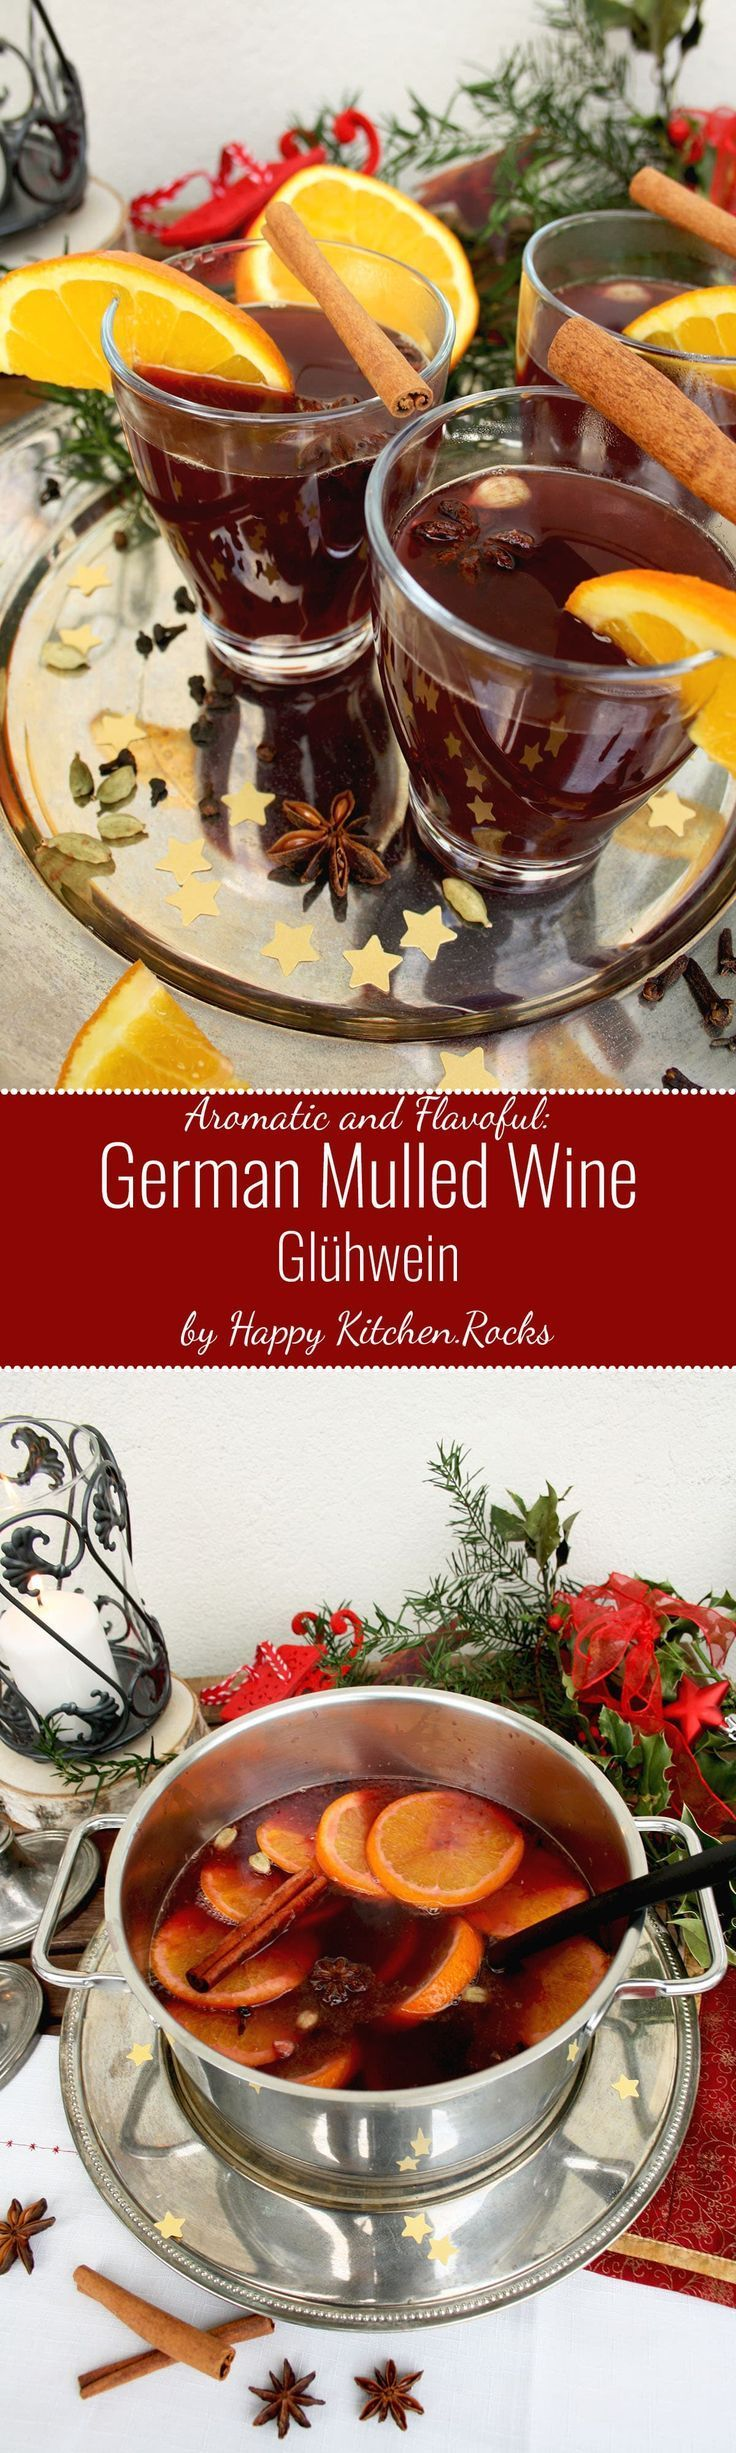 German Mulled Wine (Glühwein) contains all traditional Christmas spices as well as a fruity hint of citrus. It's very easy to make and it looks impressive! {wine glass writer} #christmashints